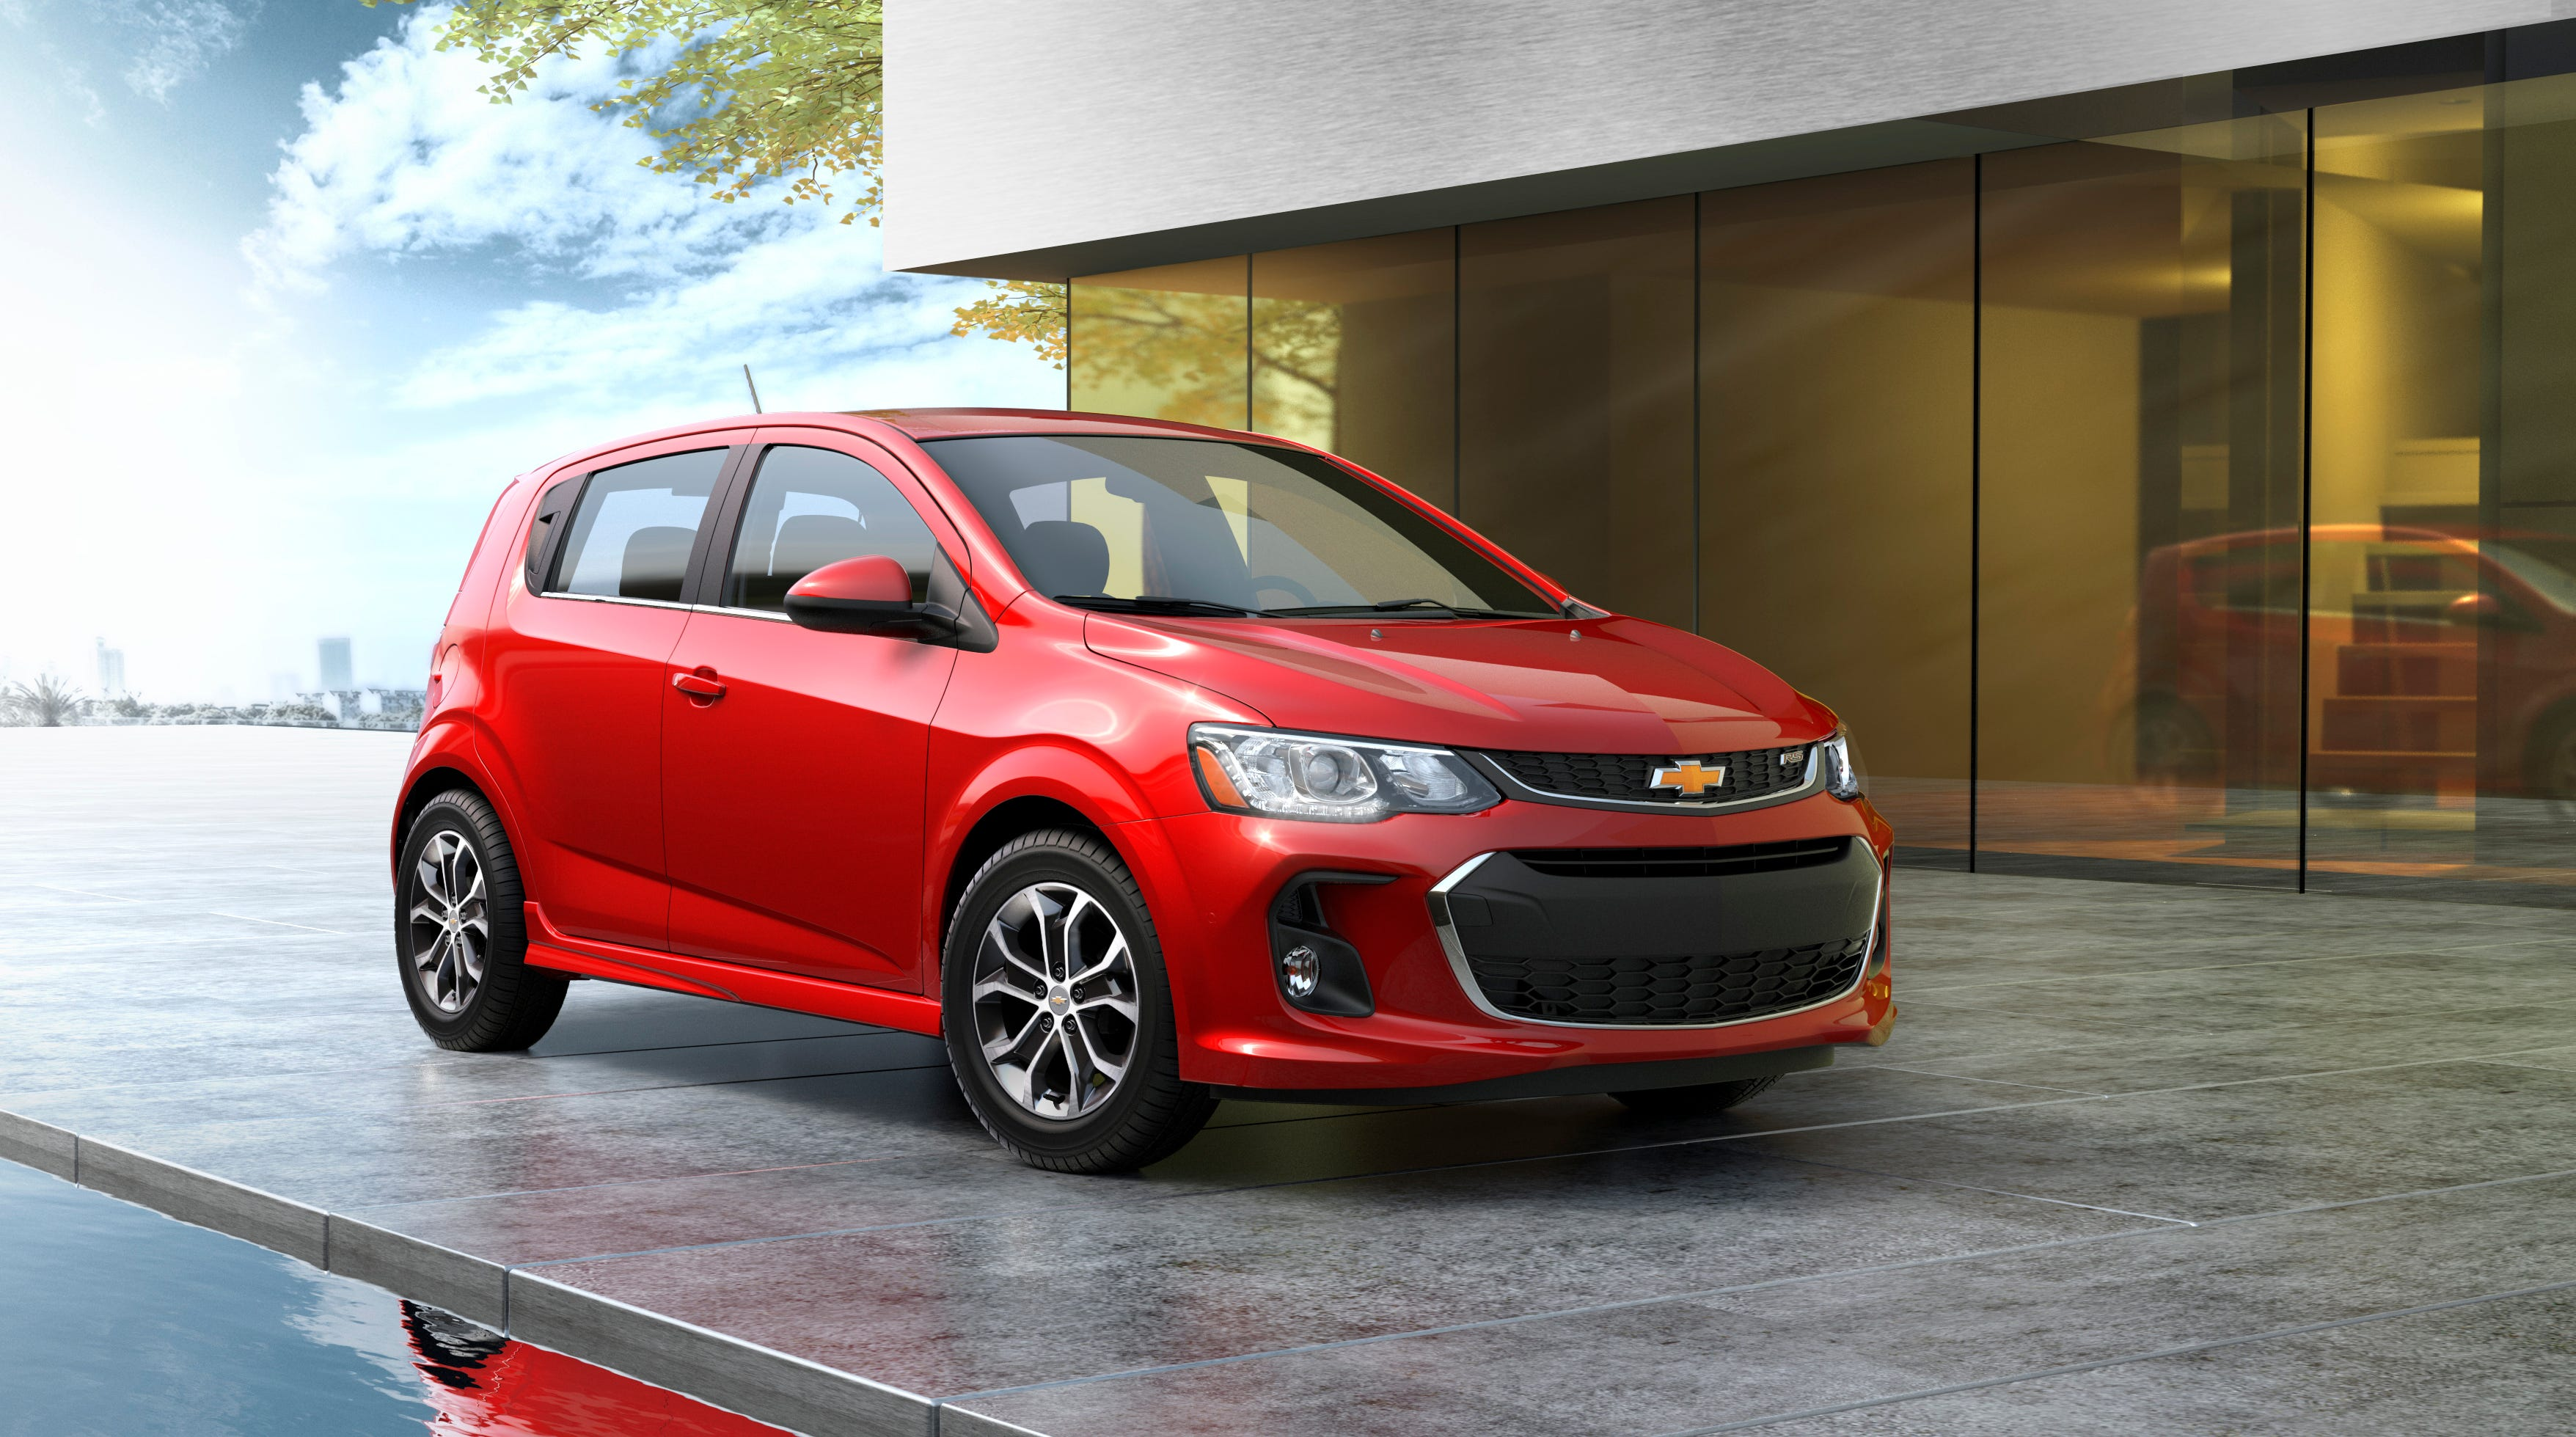 Ford Fiesta Toyota Yaris Chevrolet Sonic Subcompact Cars Ditched